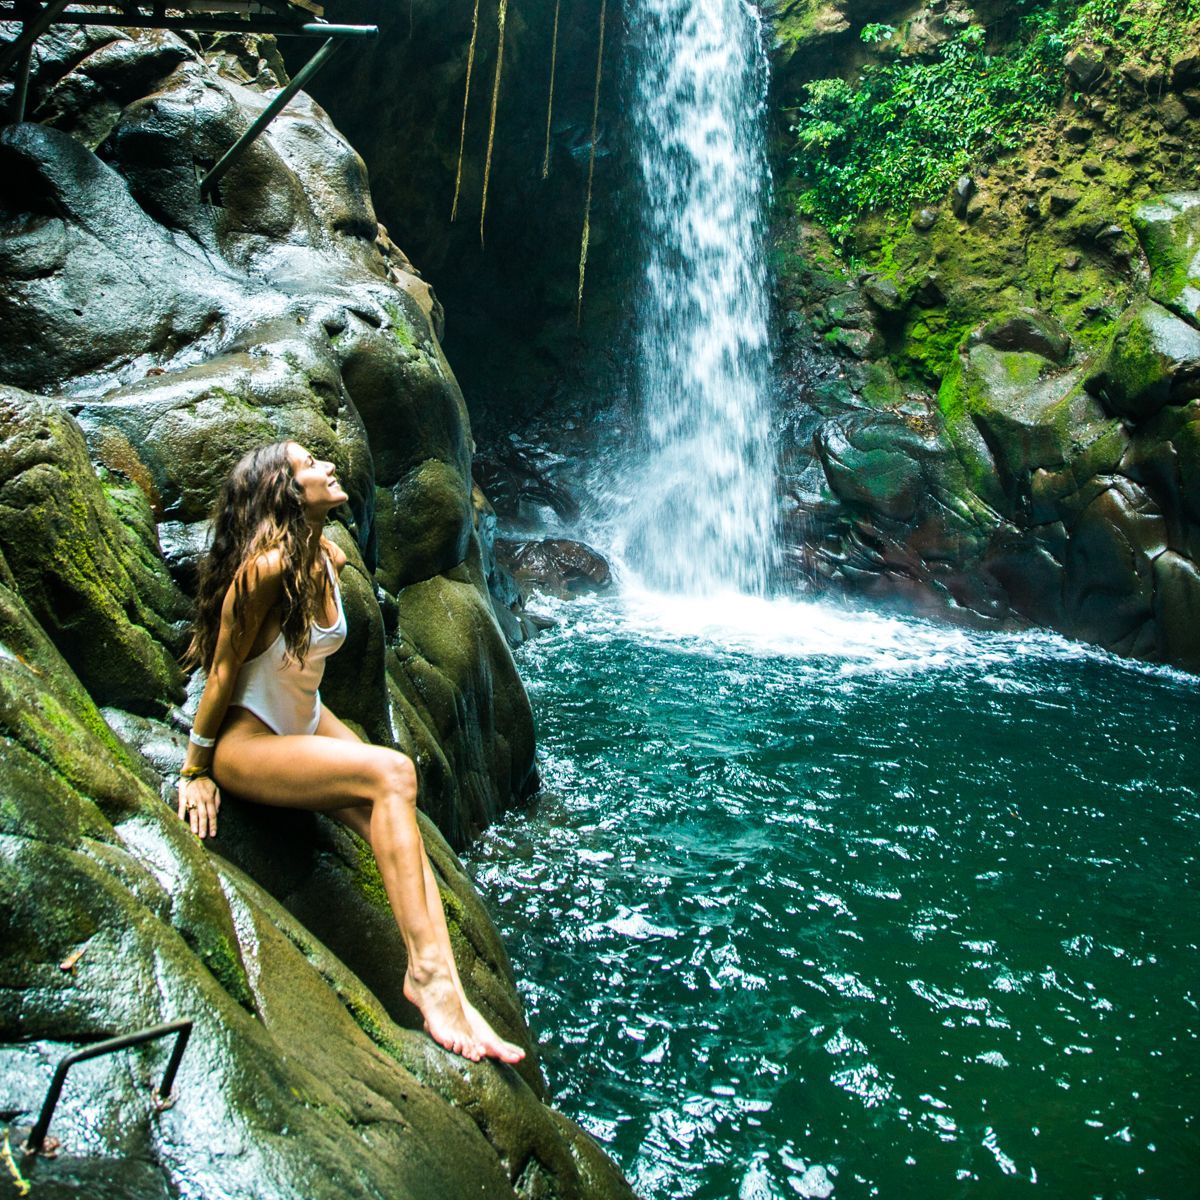 O paraíso existe e está na Costa Rica. Courtney Scott o revela